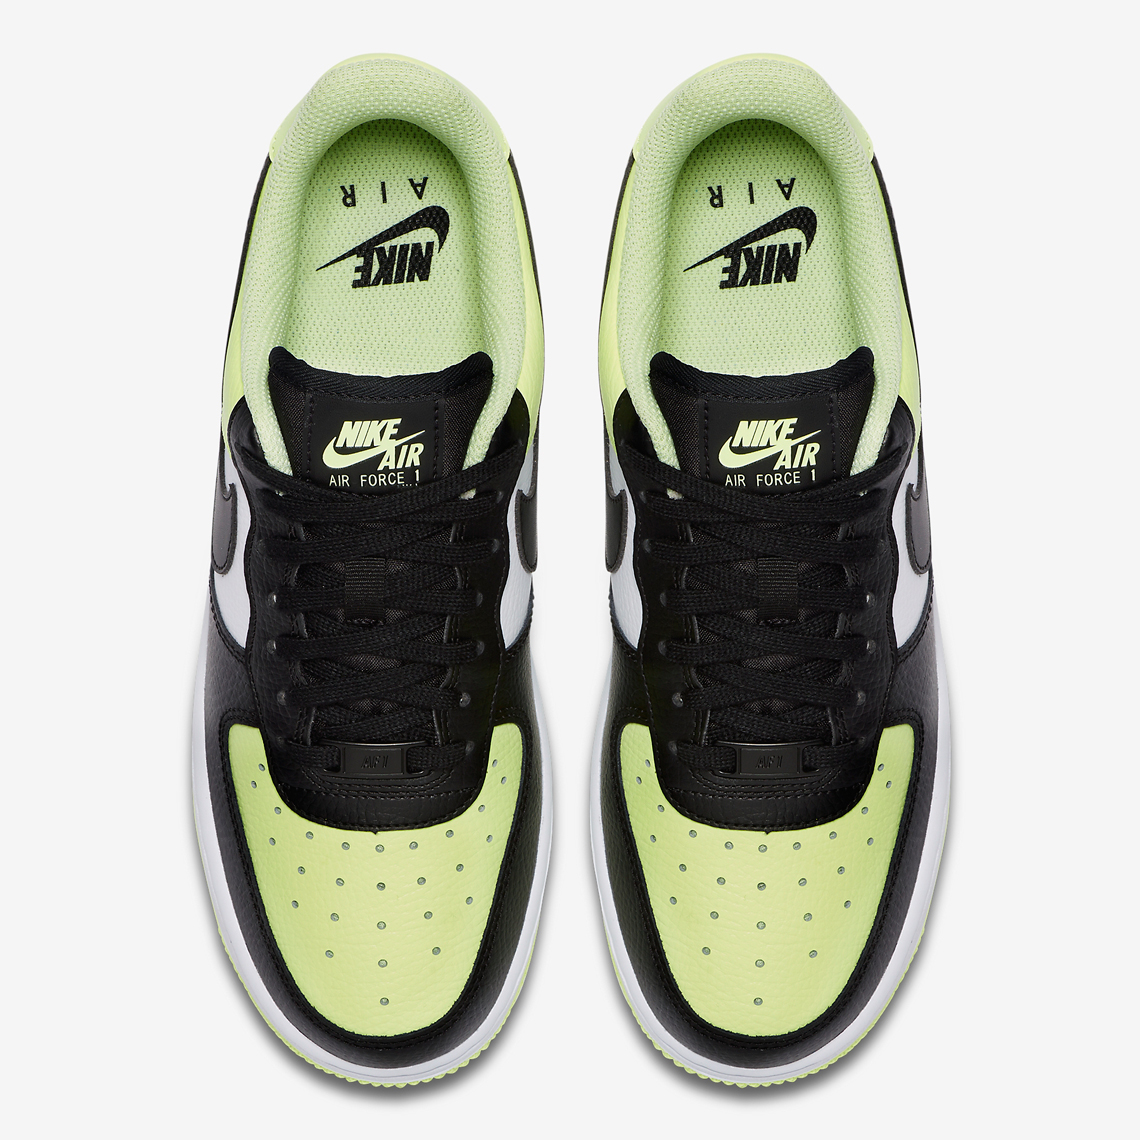 Nike Air Force 1 Low Barely Volt CW2361 700 Crumpe